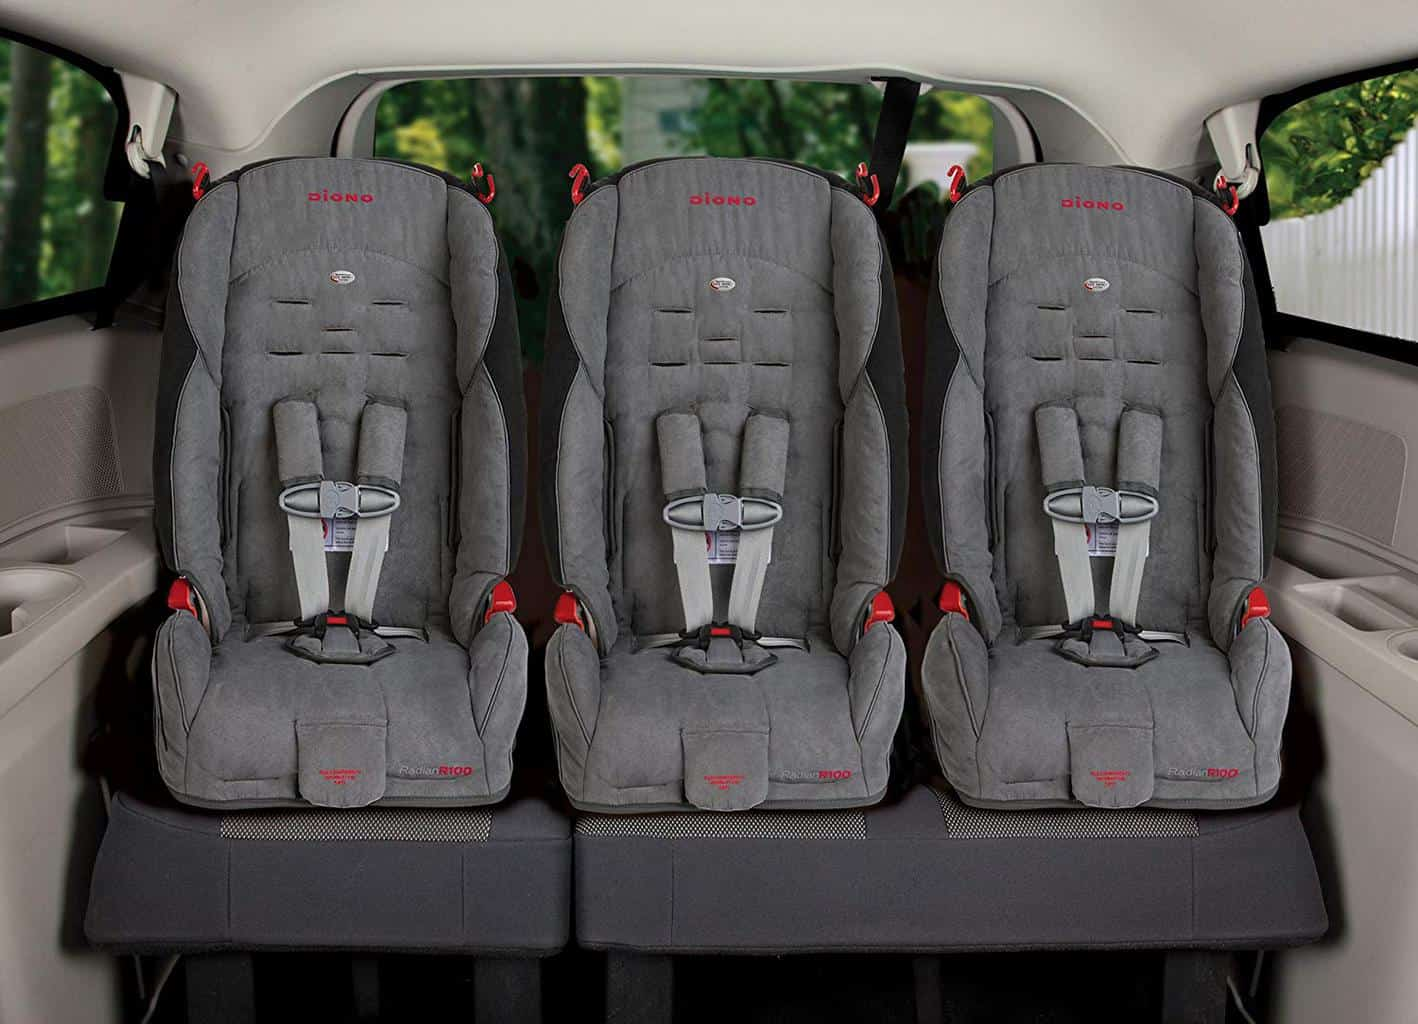 Some car seats are narrow enough to fit three across in your car